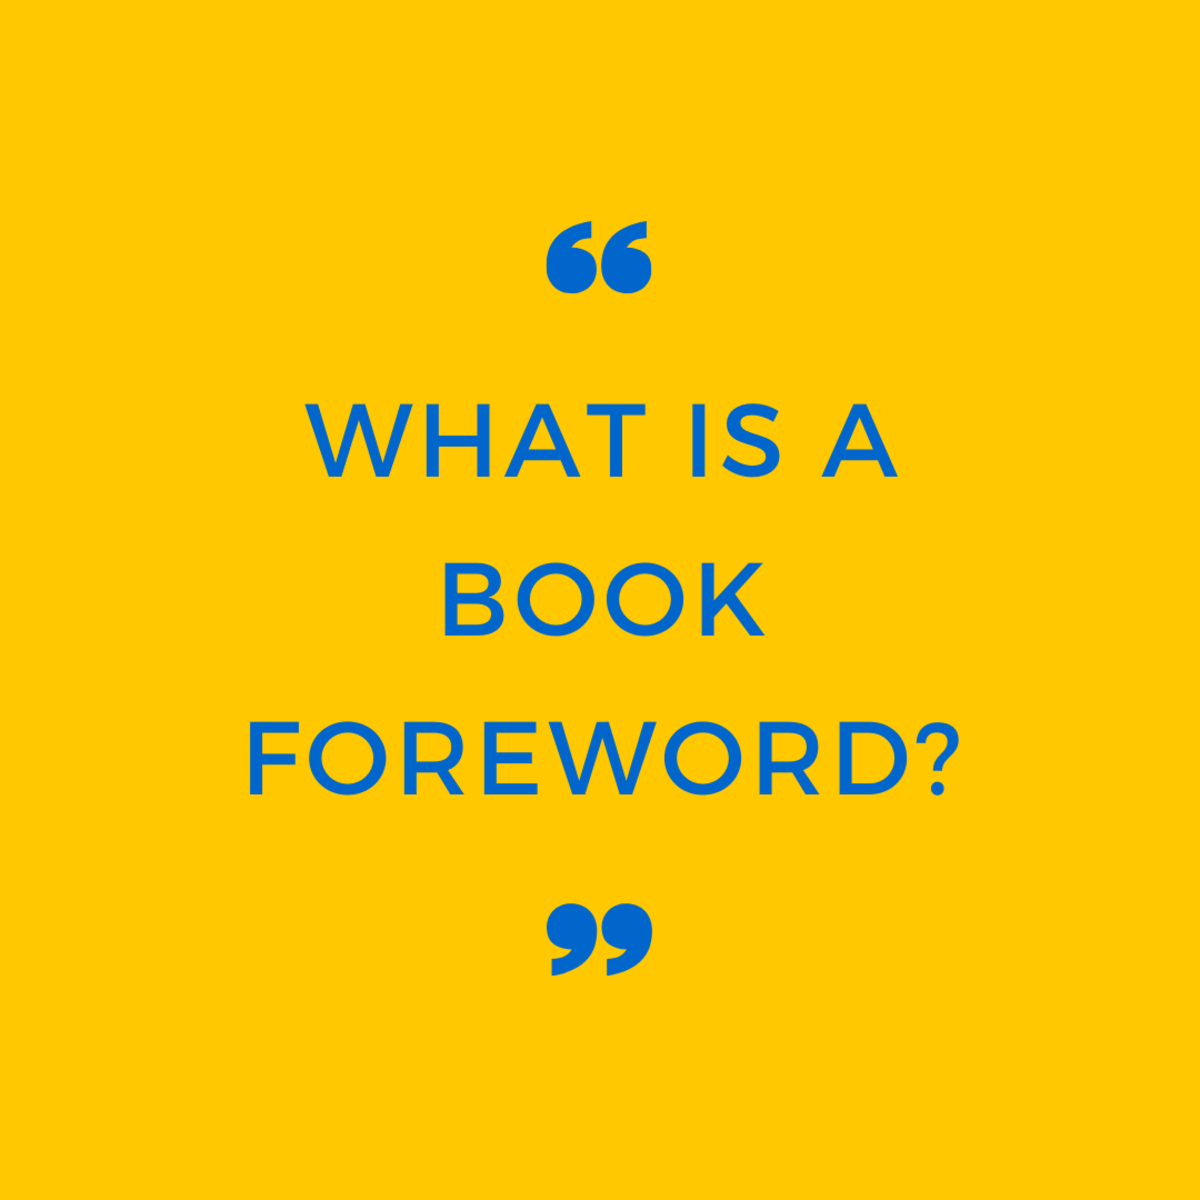 What Is a Book Foreword?